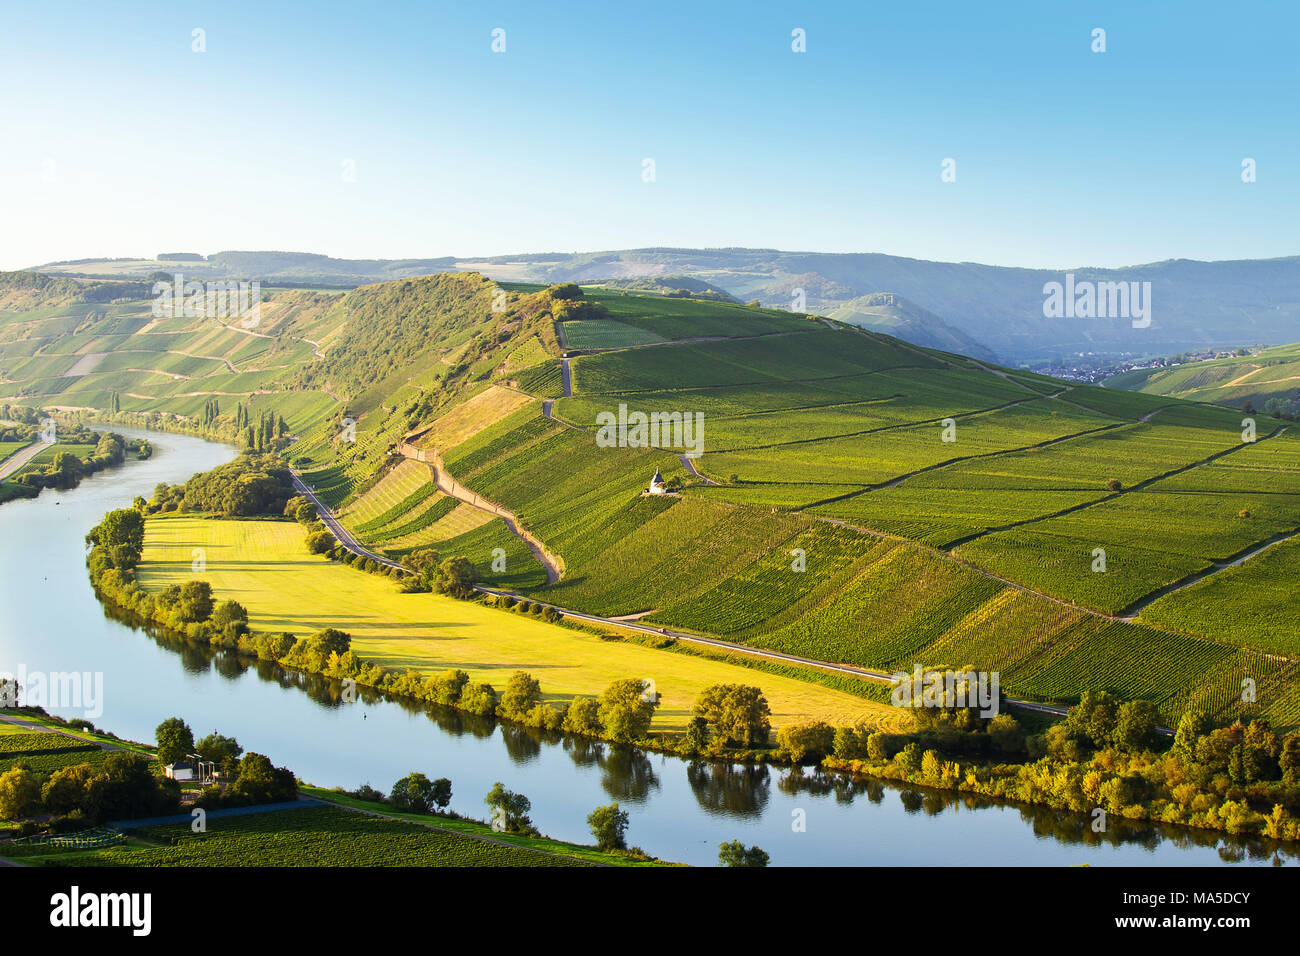 view to the Moselle and the vineyards behind it, in the summer, close Trittenheim with a cloudless sky. - Stock Image